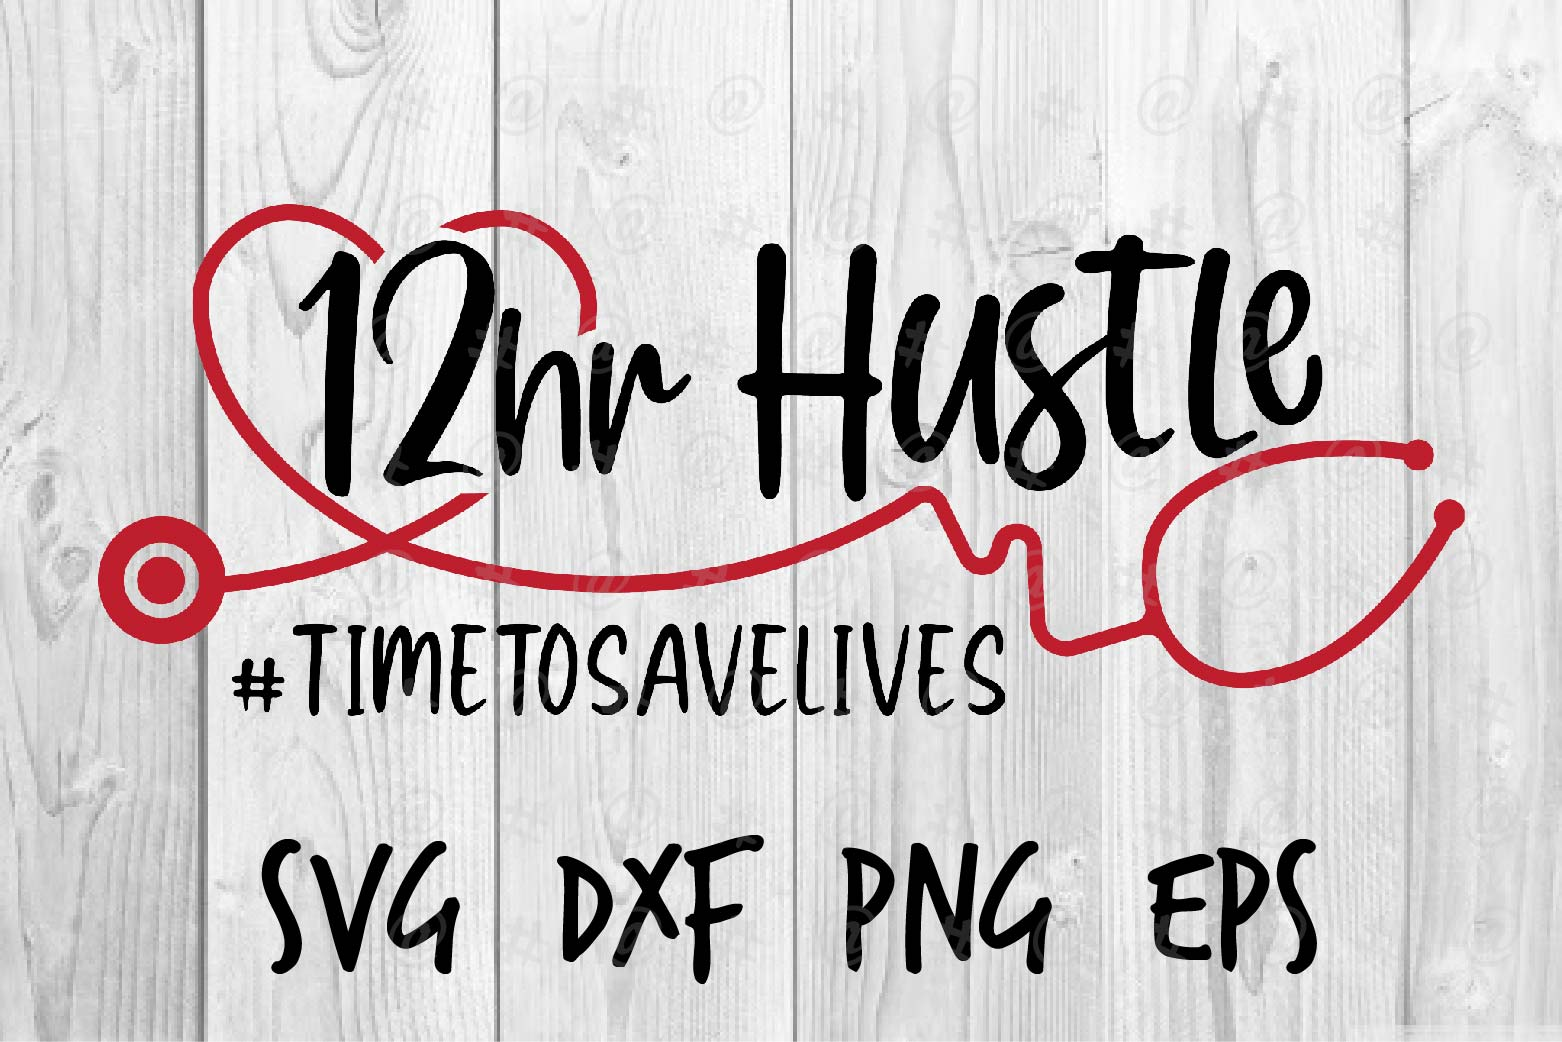 Download Free 12 Hr Hustle Graphic By Spoonyprint Creative Fabrica for Cricut Explore, Silhouette and other cutting machines.